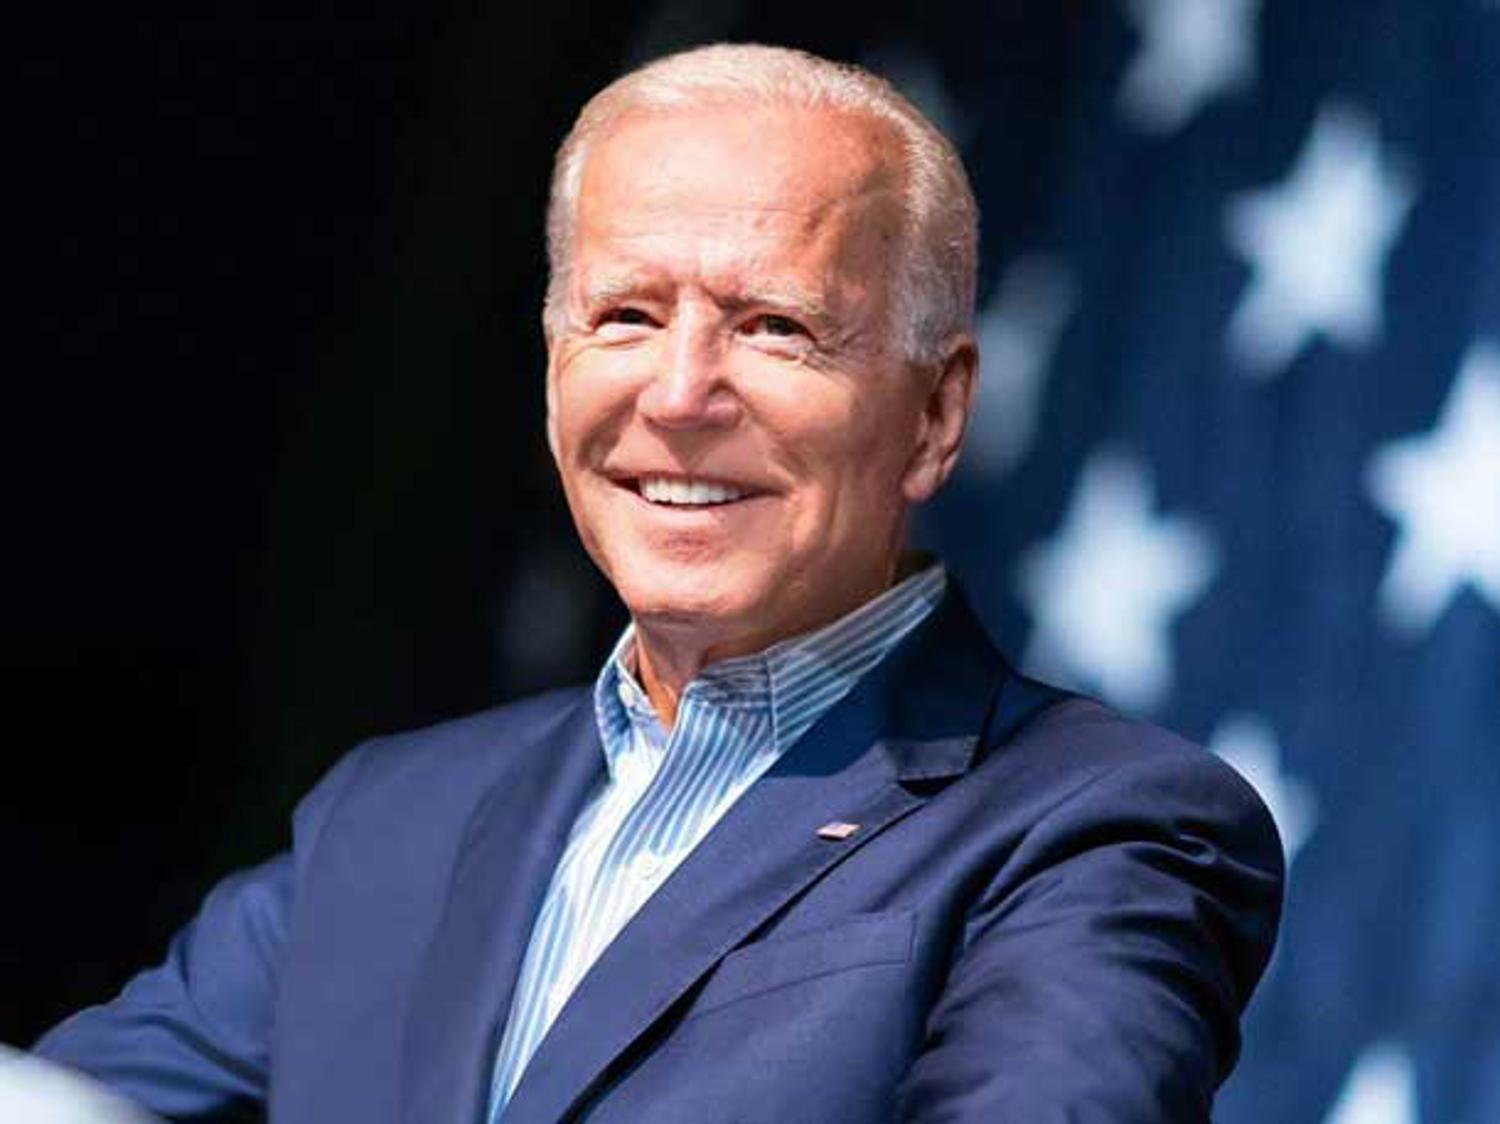 www.crn.com: Biden To Order Review Of U.S. Semiconductor, IT Supply Chains